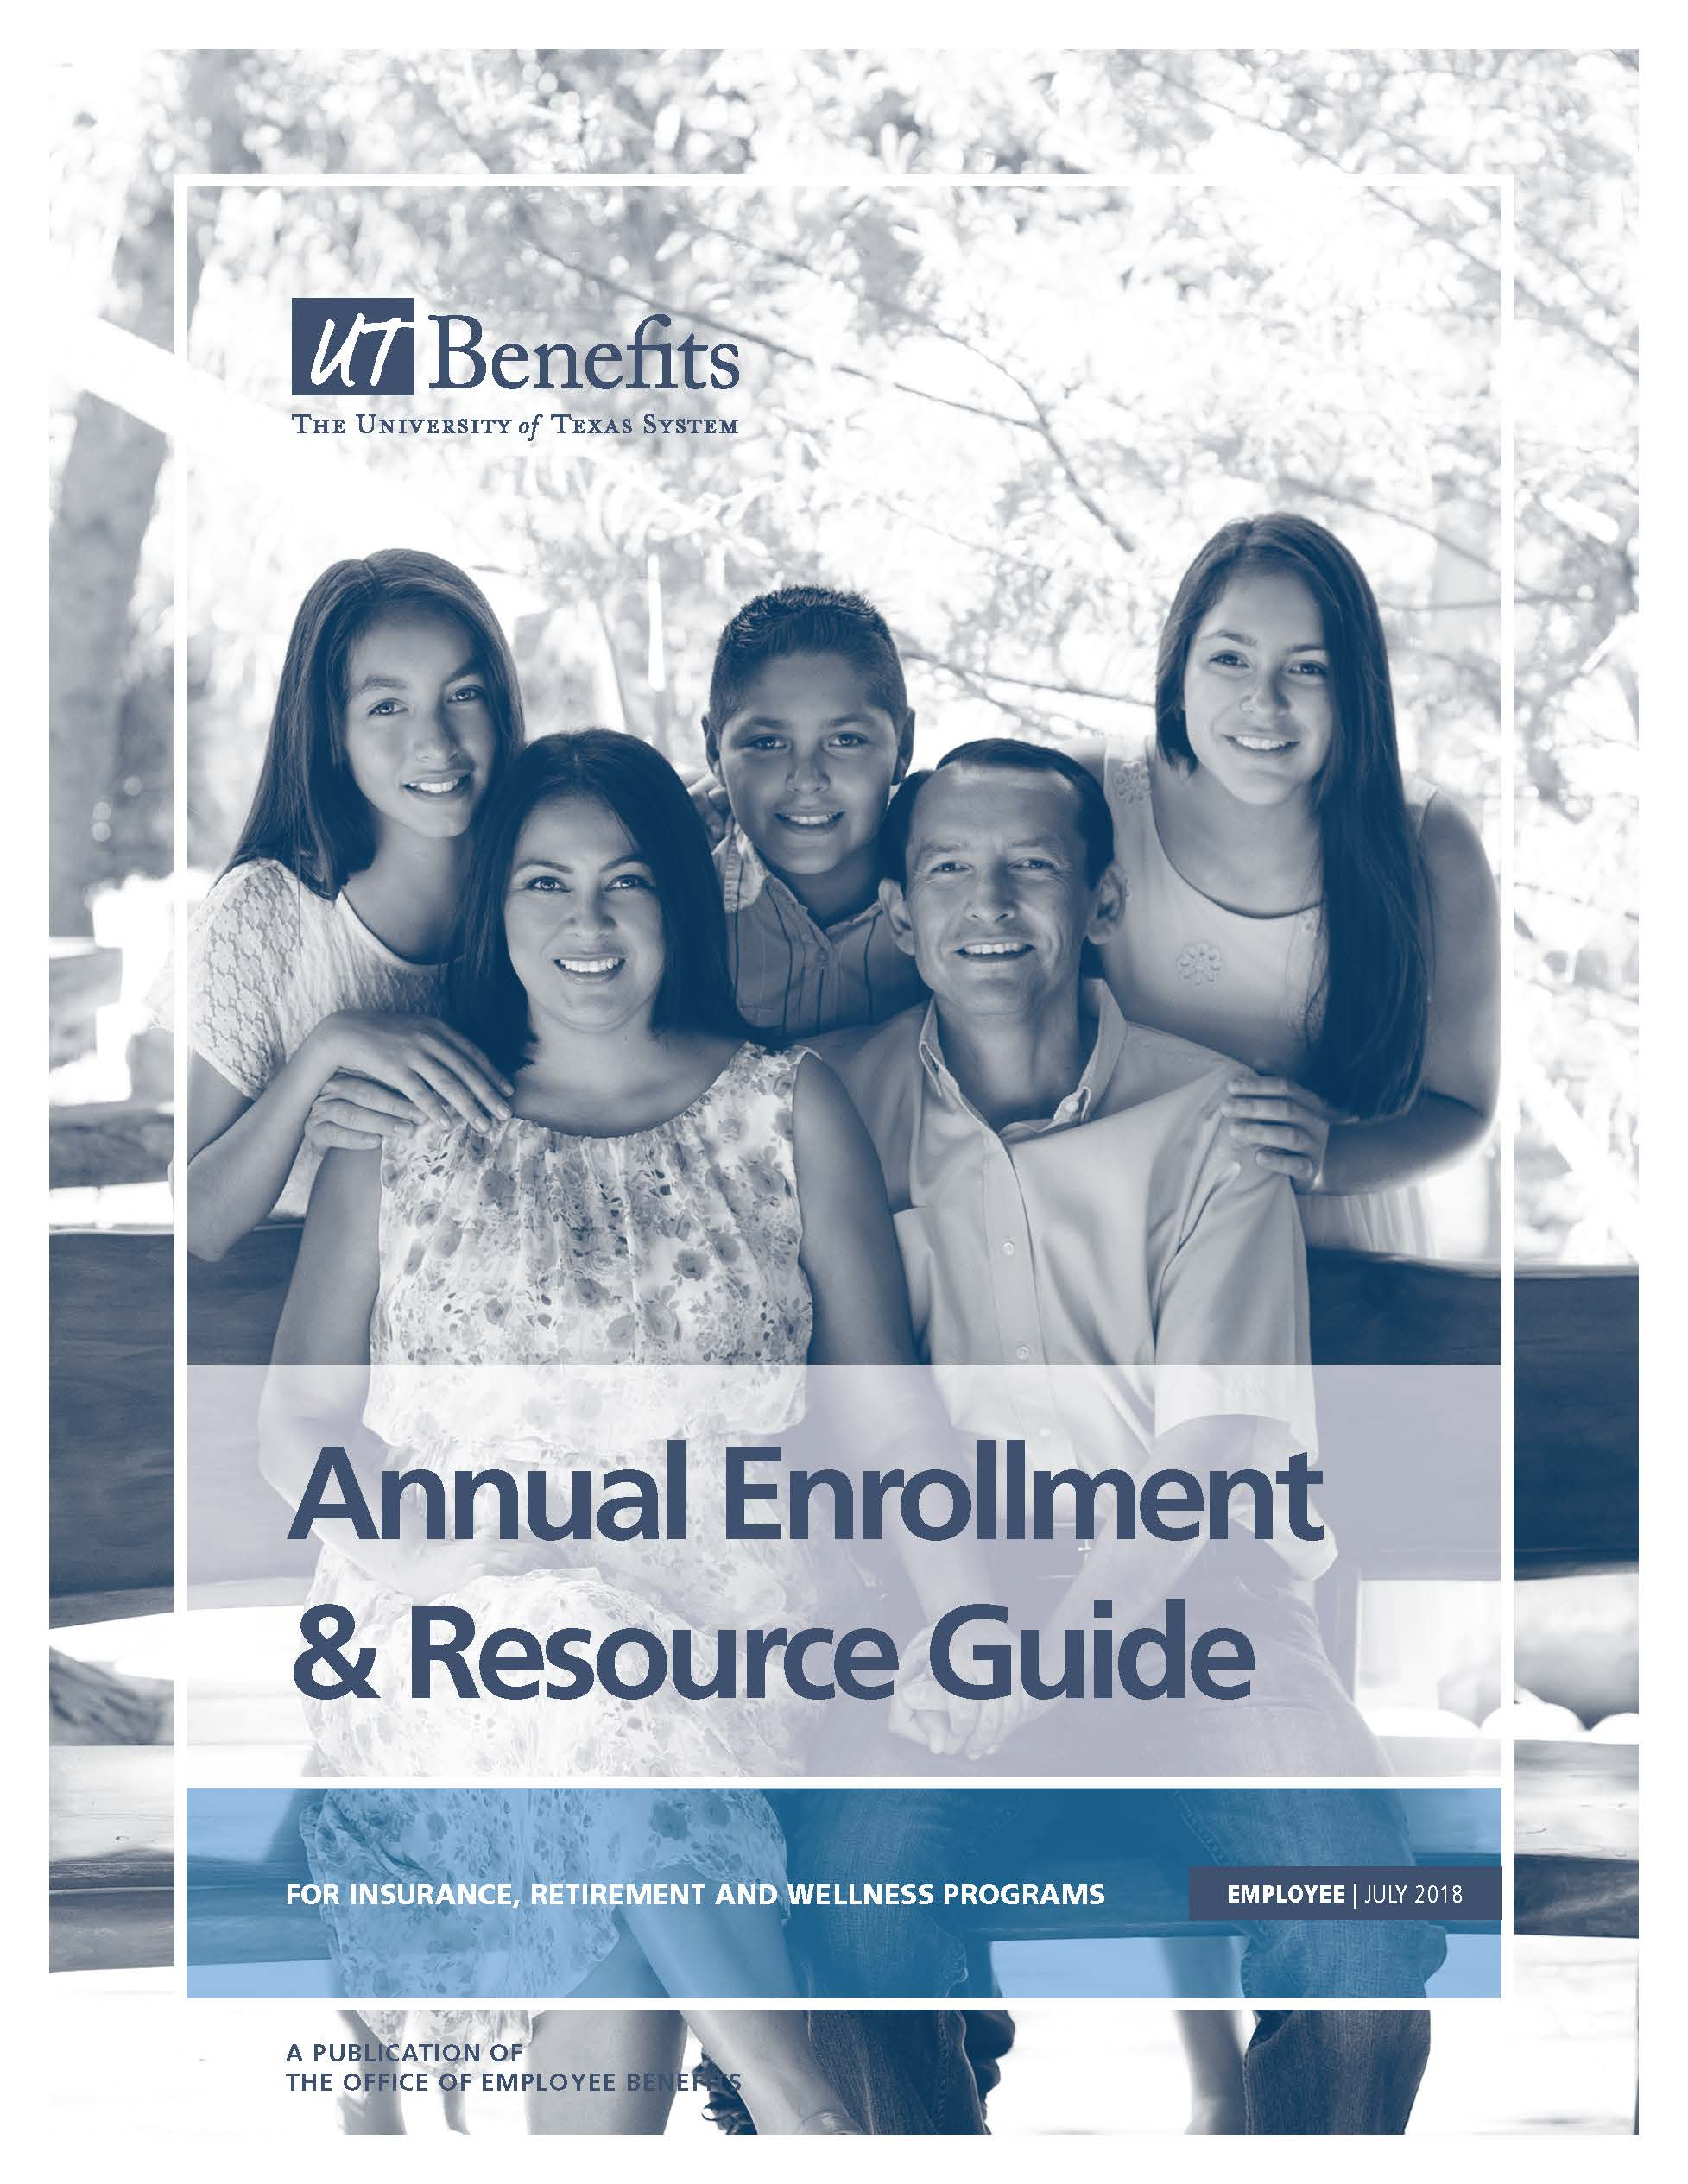 Annual Enrollment Amp Resource Guide For Employees For